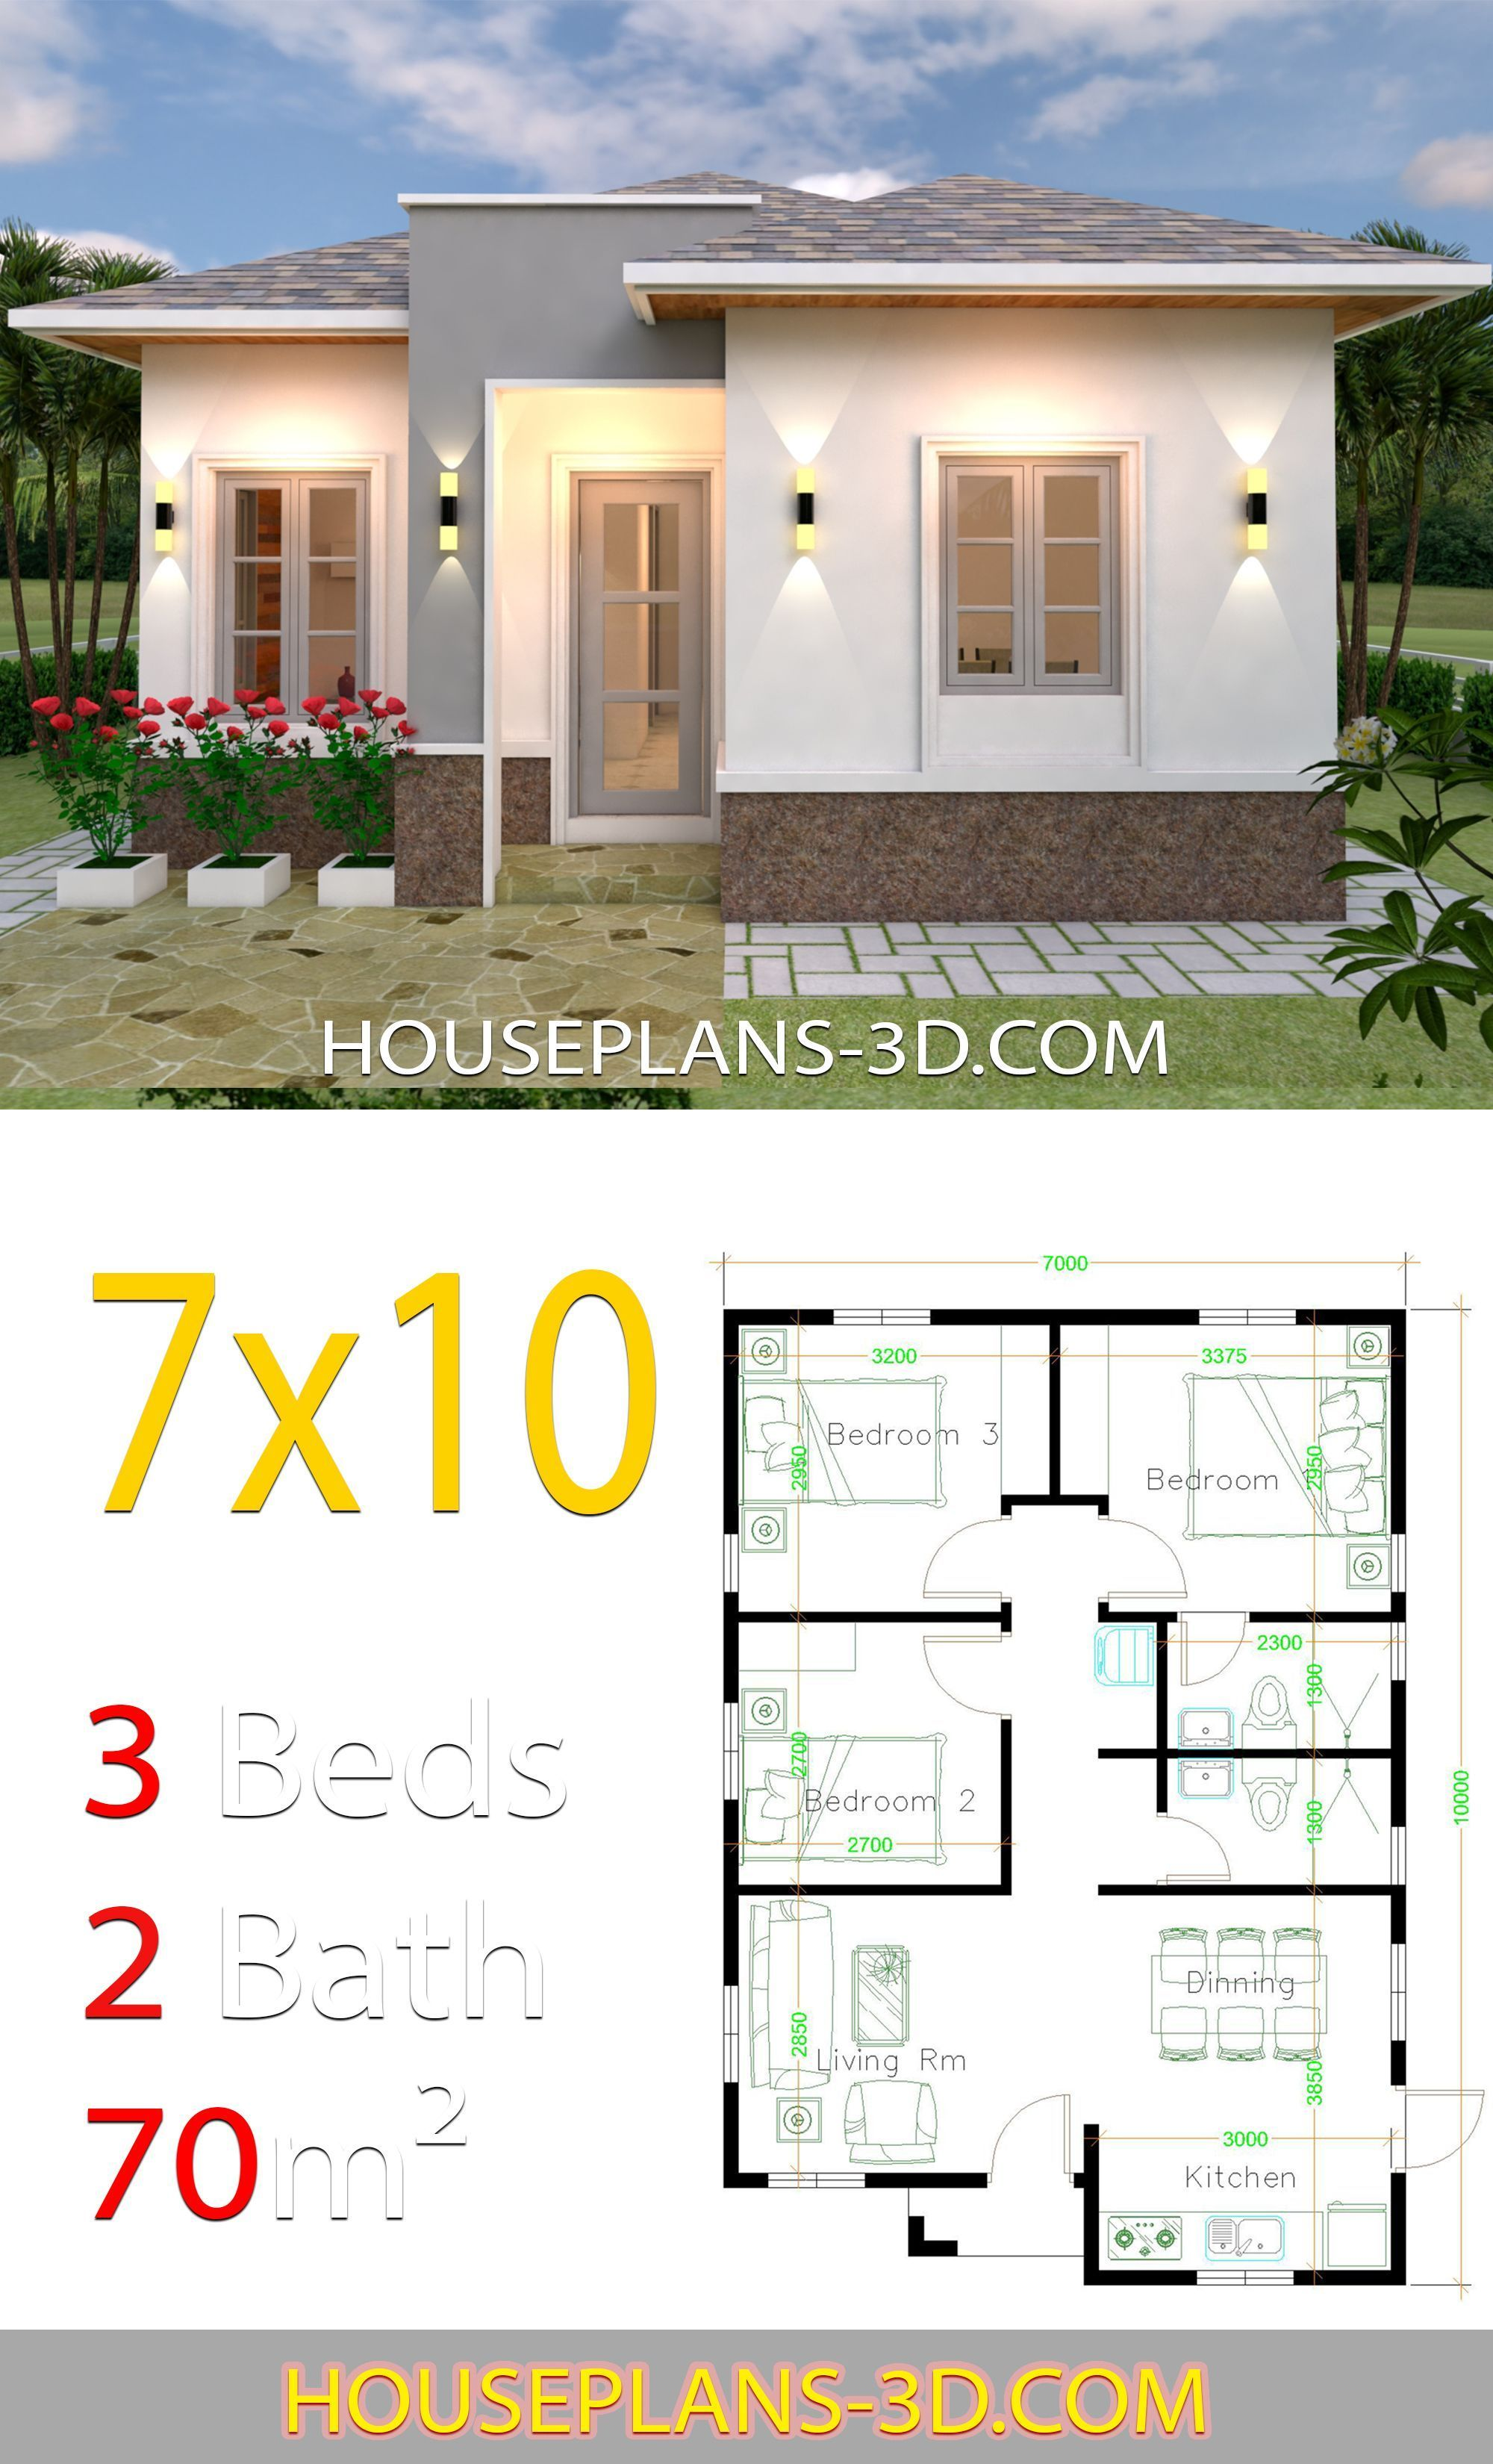 House Plans Architecture Layout 23 Ideas House Plans Architecture Layout My Ideas House Plans Architectural House Plans Flat Roof House